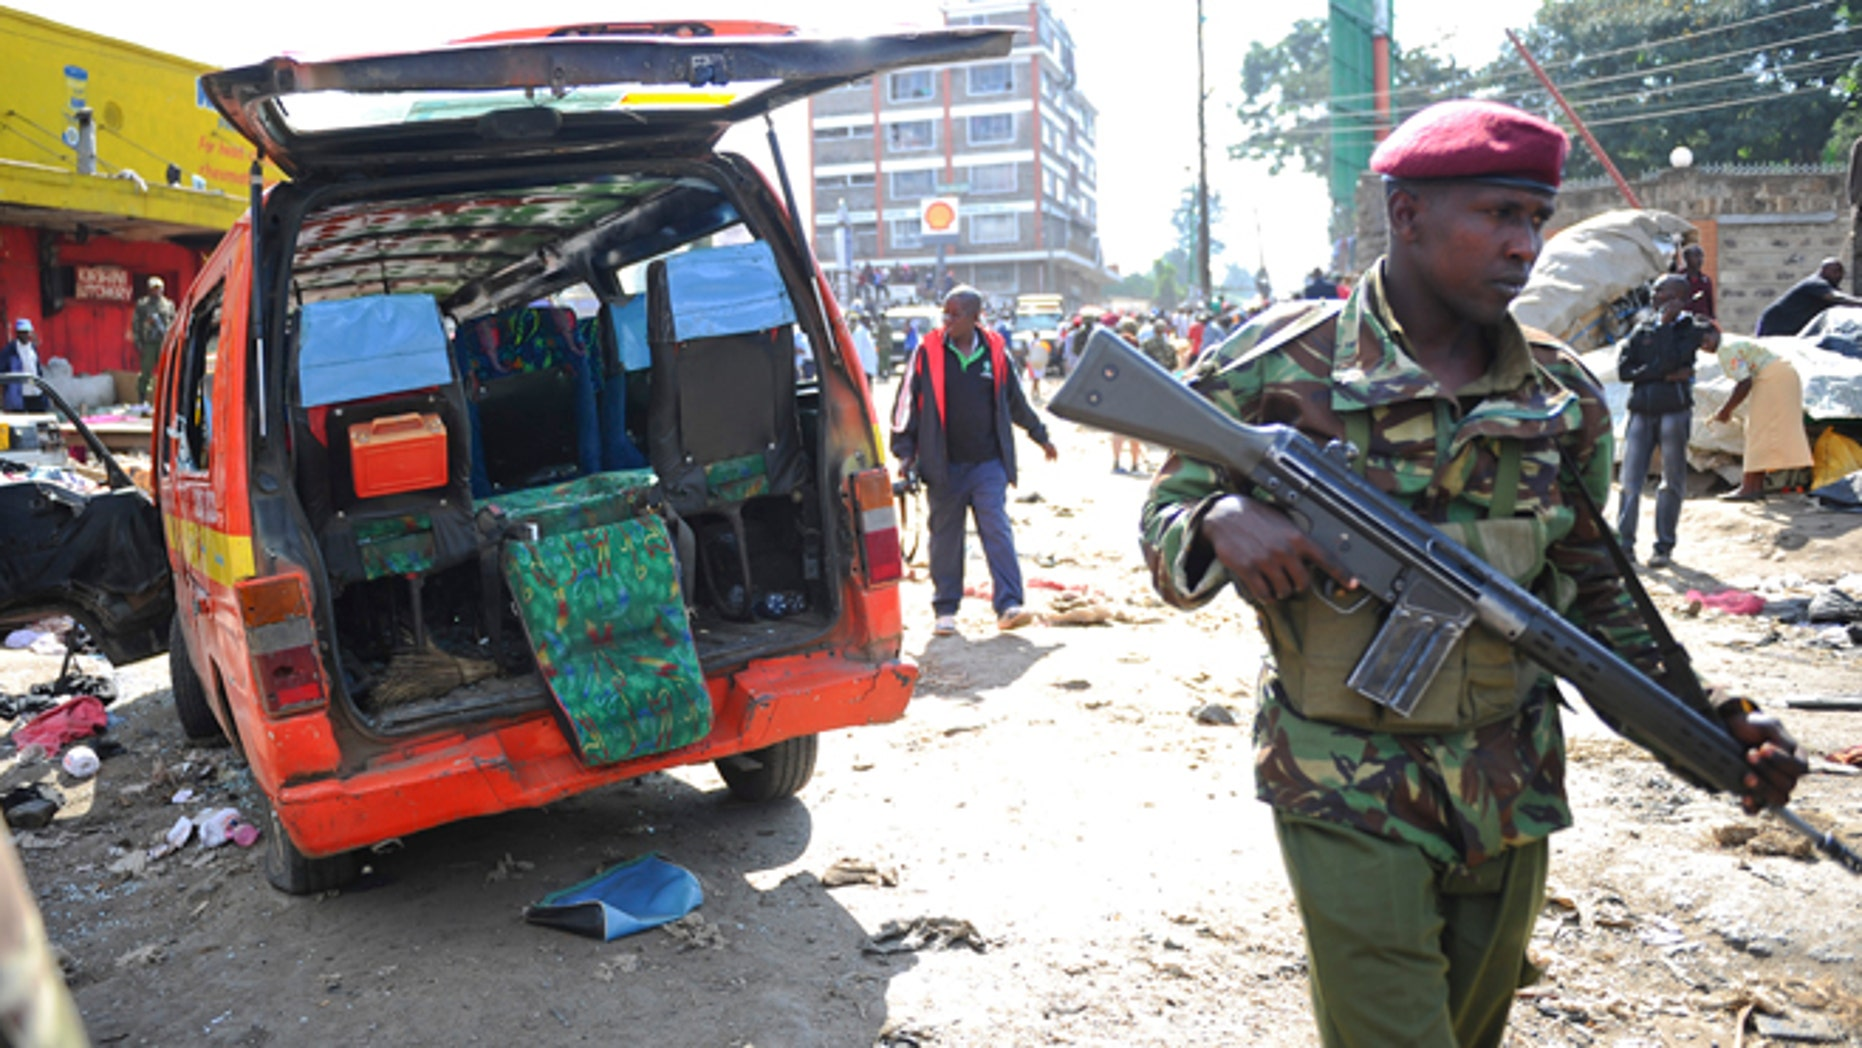 May 16, 2014: A member of the security forces patrols at the site where two blasts detonated, one in a mini-van used for public transportation, in a market area of Nairobi, Kenya.